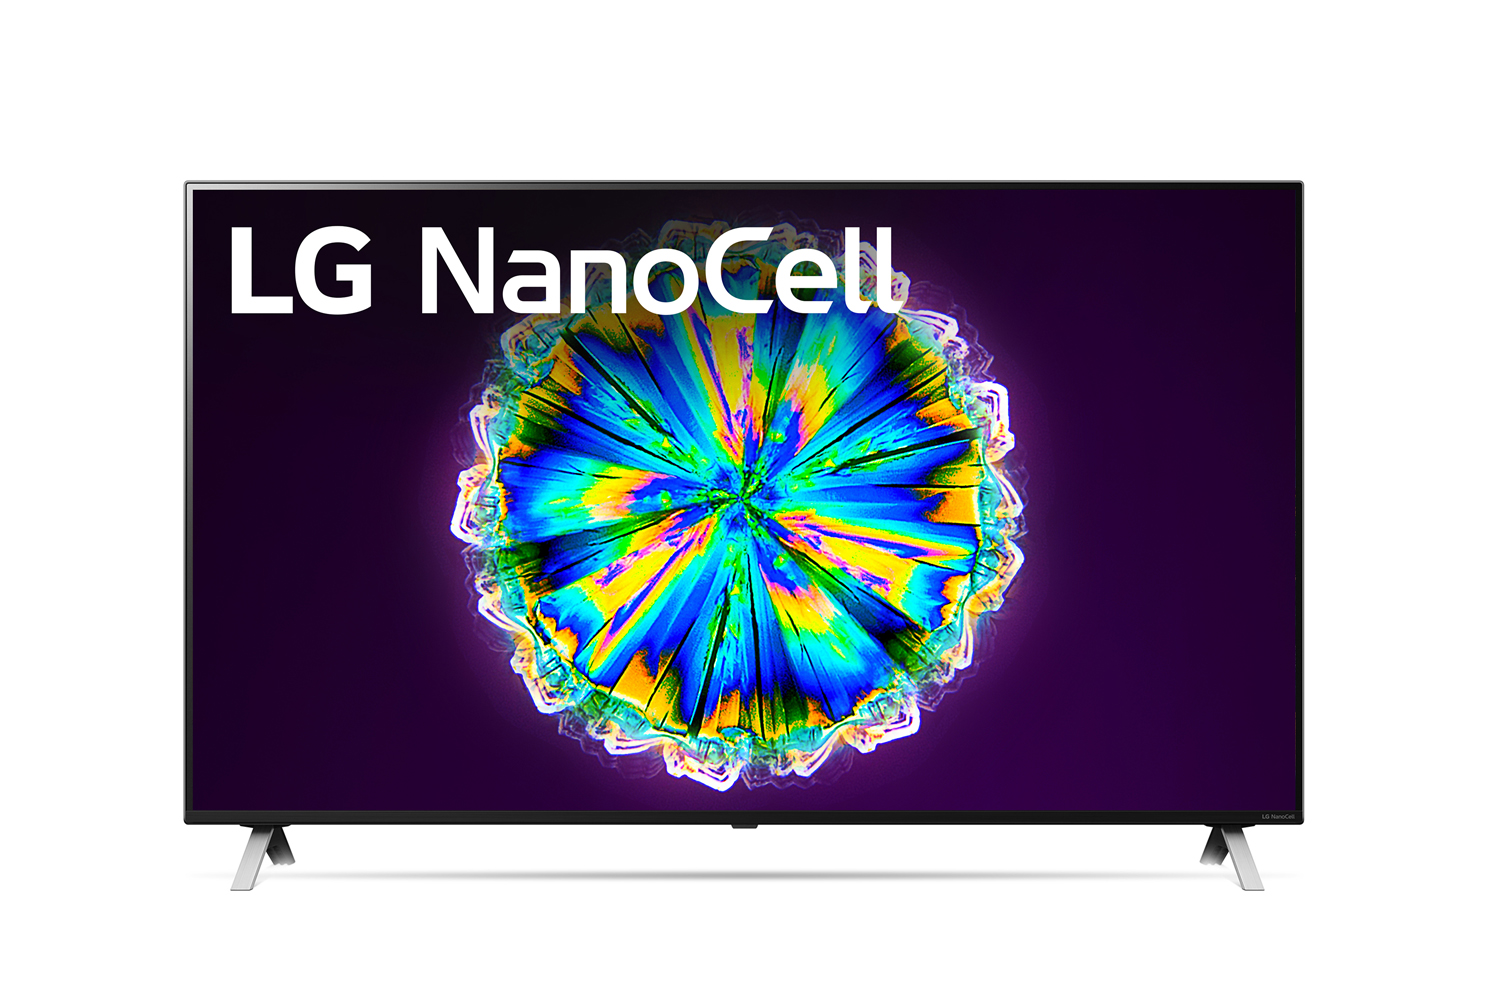 NanoCell Smart TV with HDR